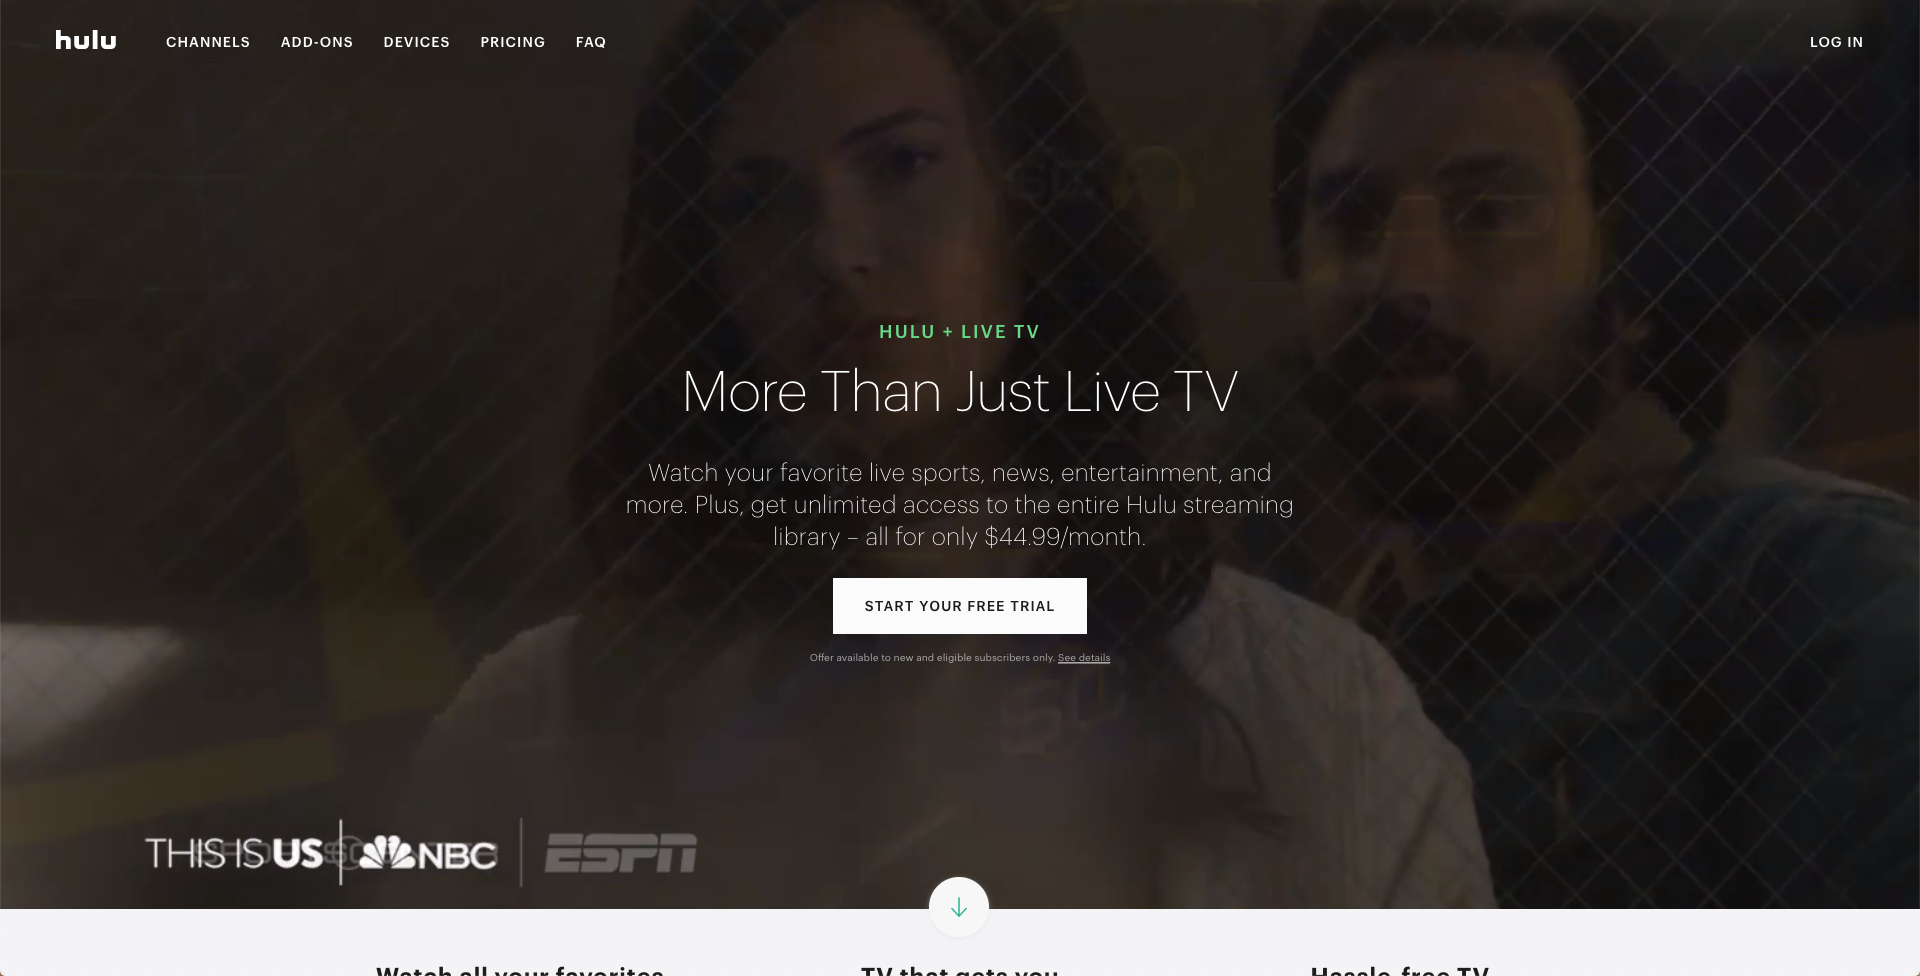 hulu with live tv cost price 2019